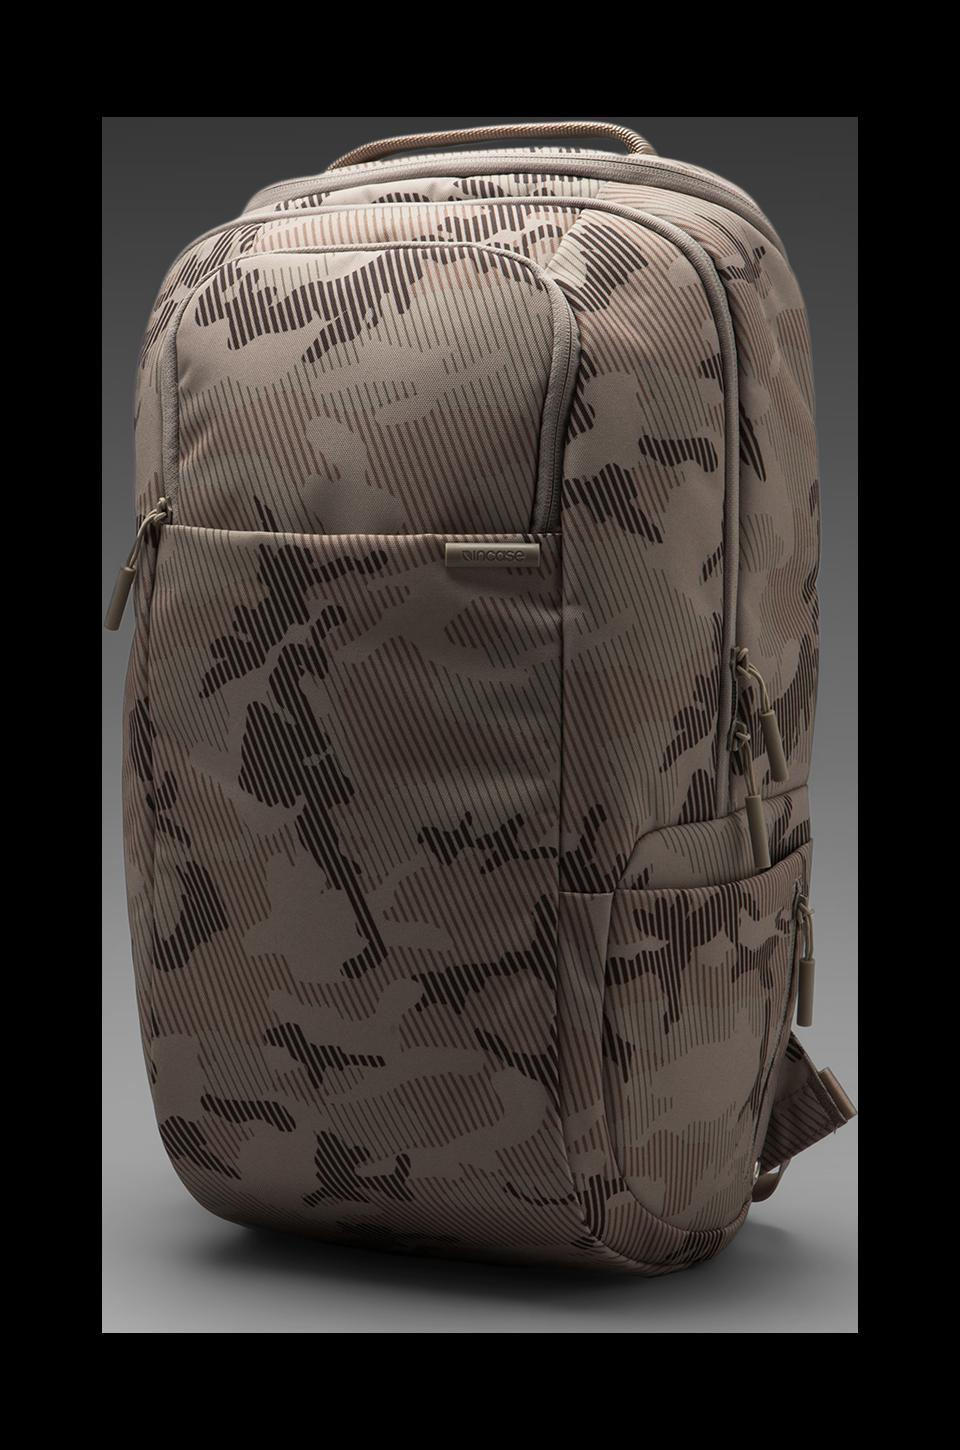 INCASE Capsule DSLR Pro Pack in Dune Metric Camo